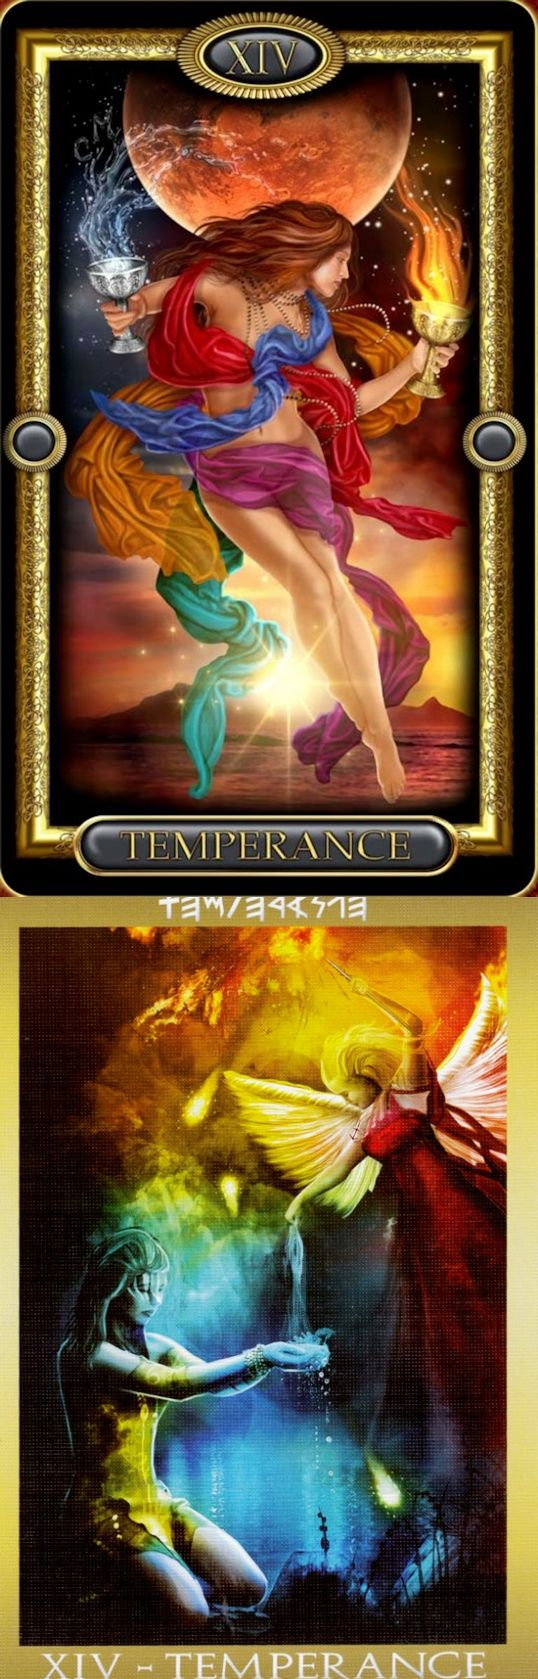 TEMPERANCE: moderation and extremes (reverse). Royale Tarot deck and Ibiza Tarot deck: free tarot reading online accurate, tarot cards yes no vs tarot cancer. Best 2017 cartomancy and pagani zonda.